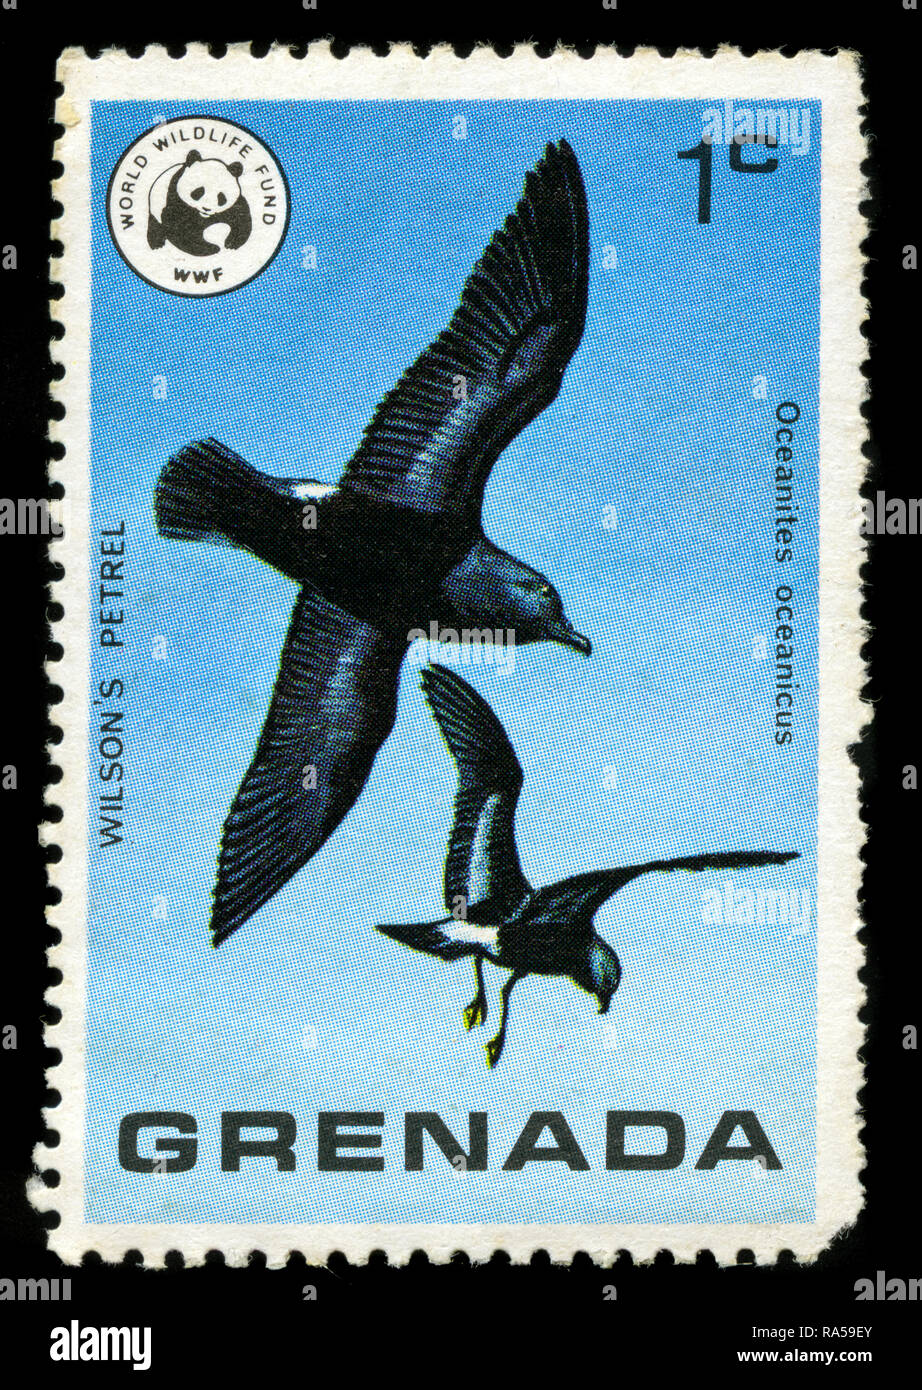 Postage stamp from Grenada in the Wild Birds of Grenada series issued in 1978 - Stock Image